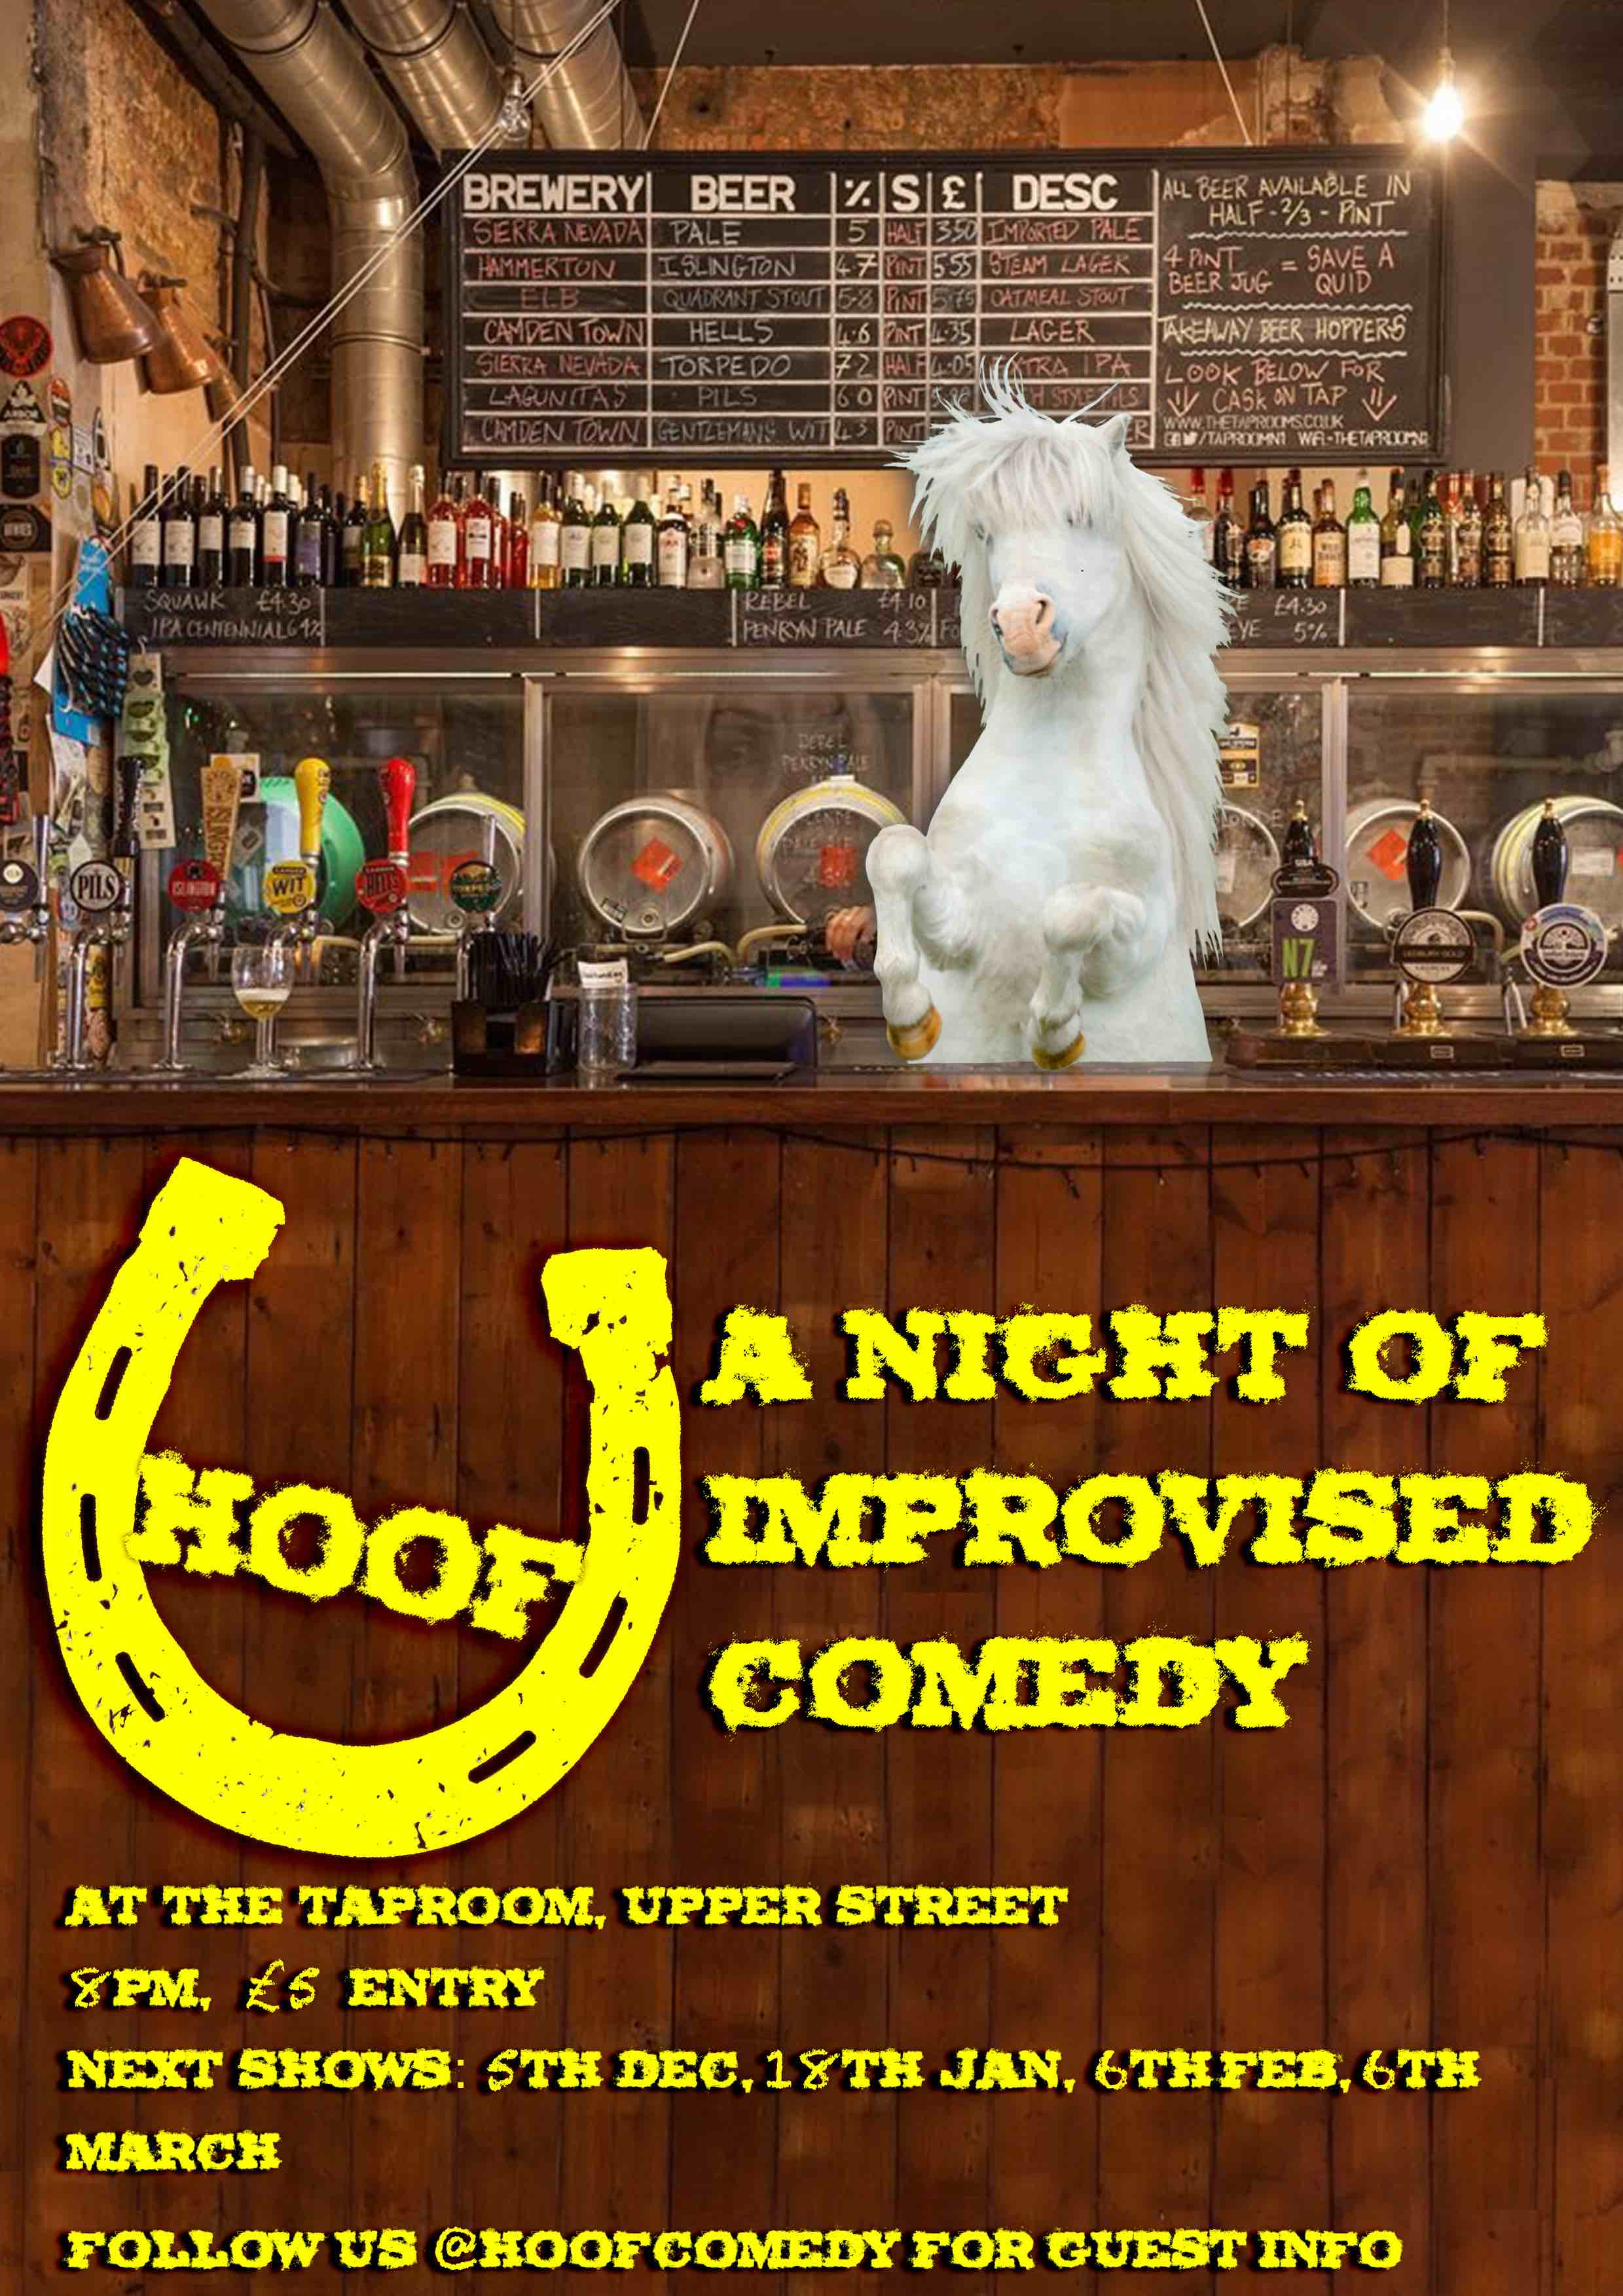 Hoof: A Night of Improvised Comedy